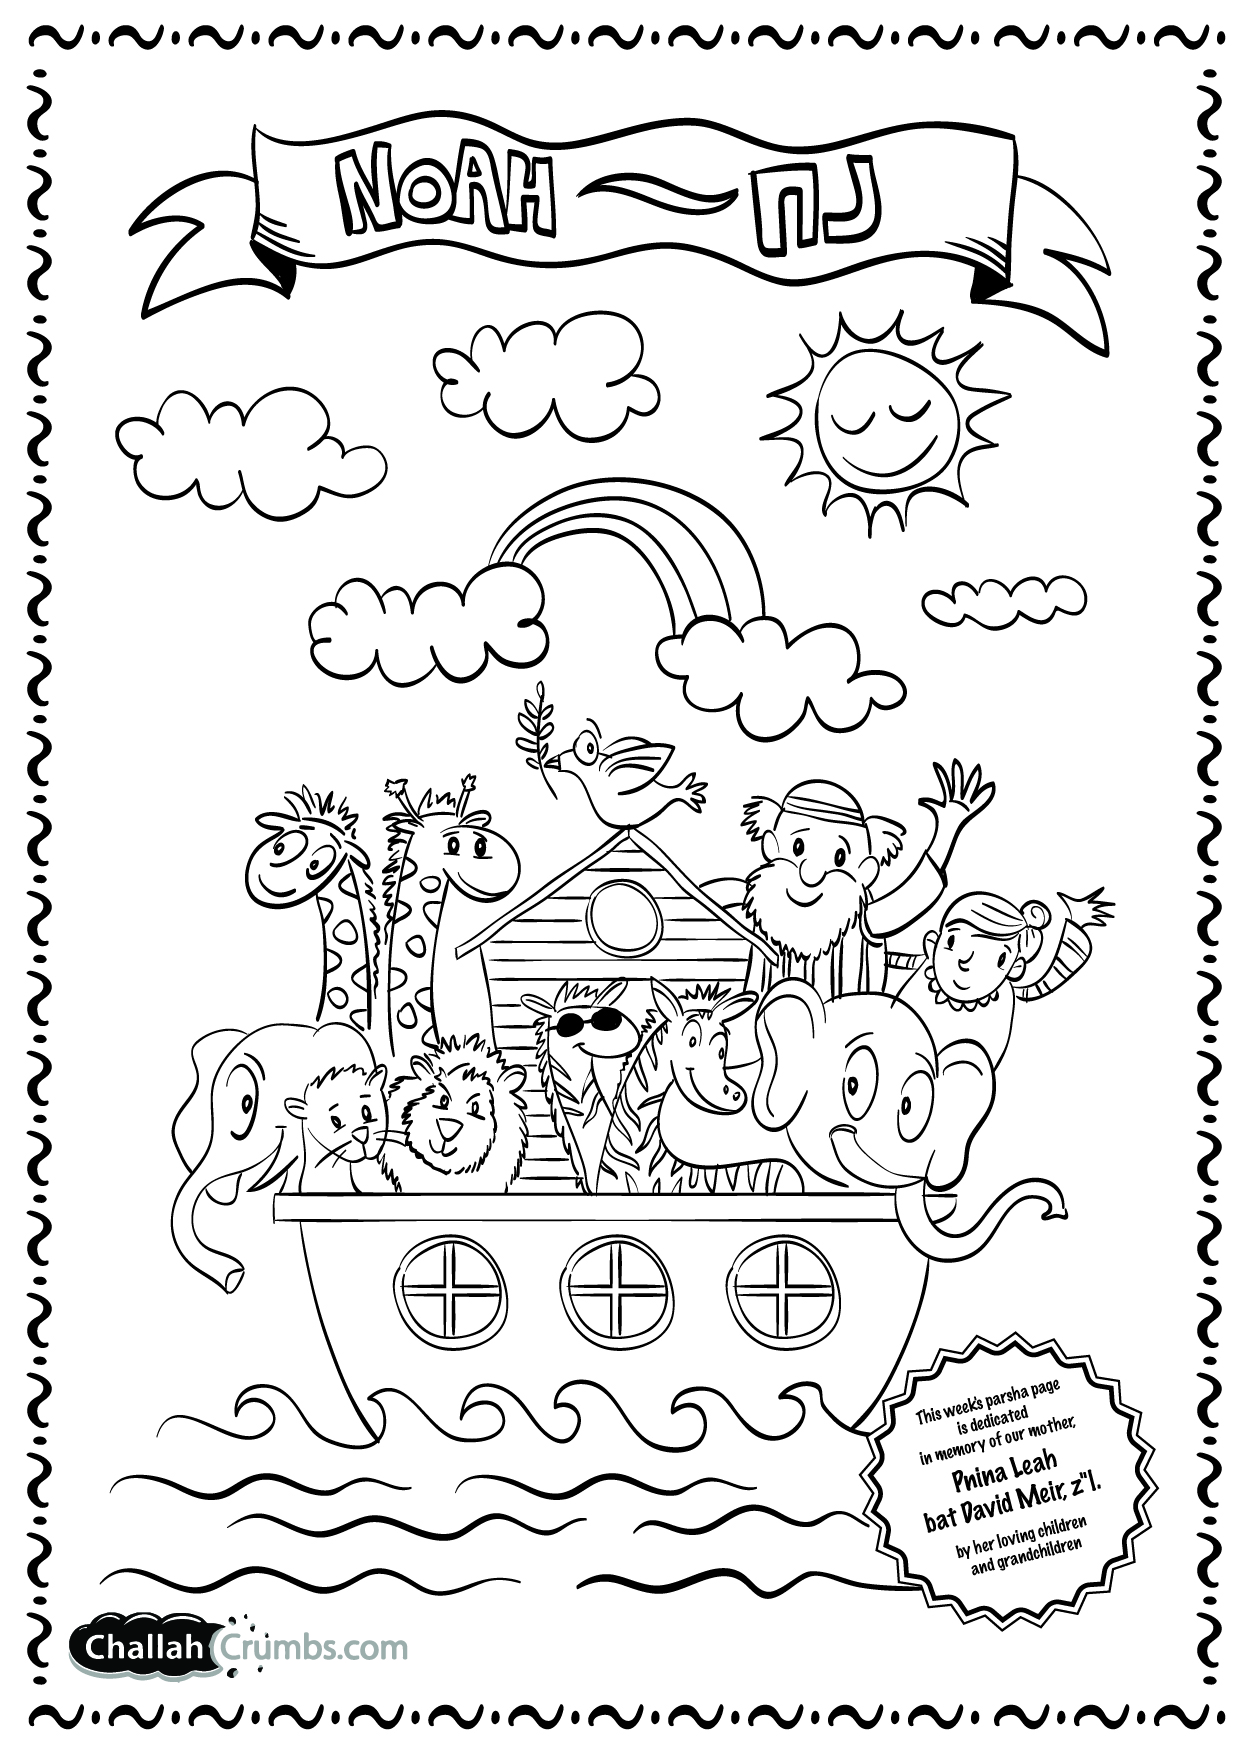 1240x1754 Parshat Noach Coloring Page